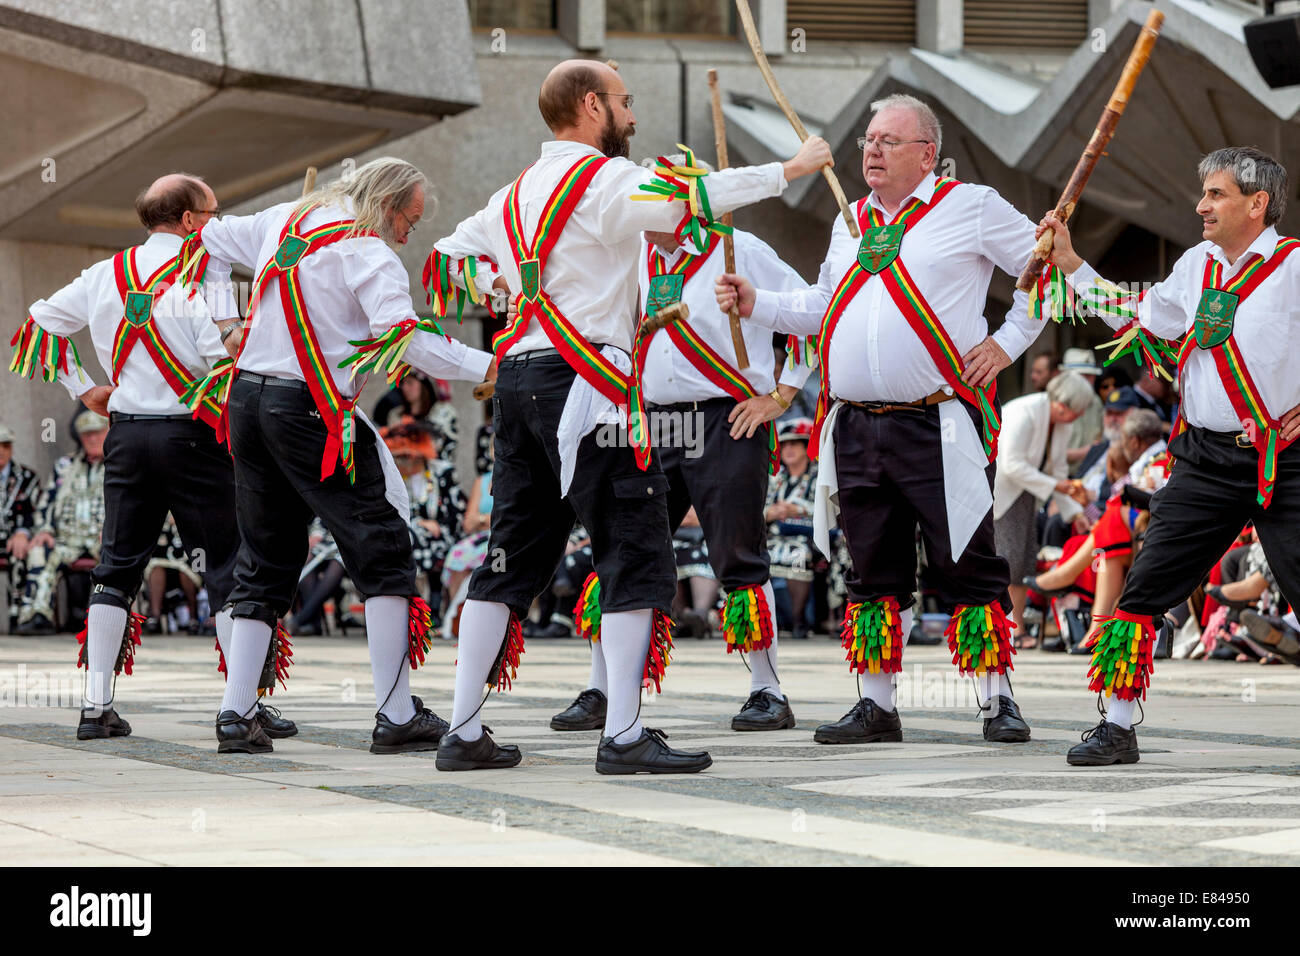 Chingford Morris Perform At The London Pearly Kings & Queens Society Costermongers Harvest Festival, London, - Stock Image